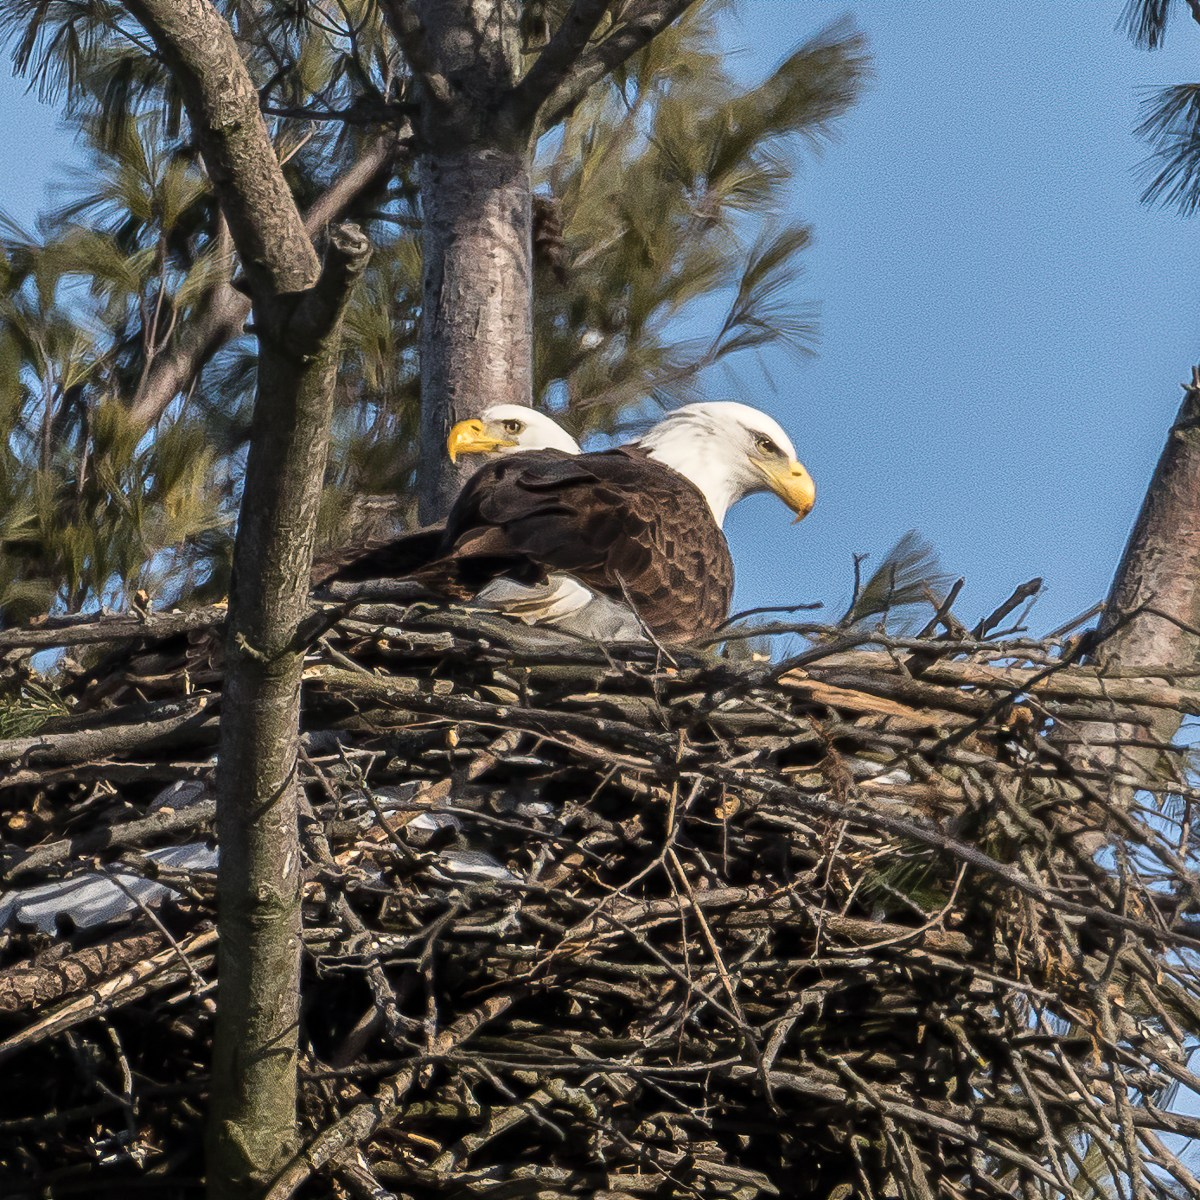 A pair of bald eagles sit in their nest